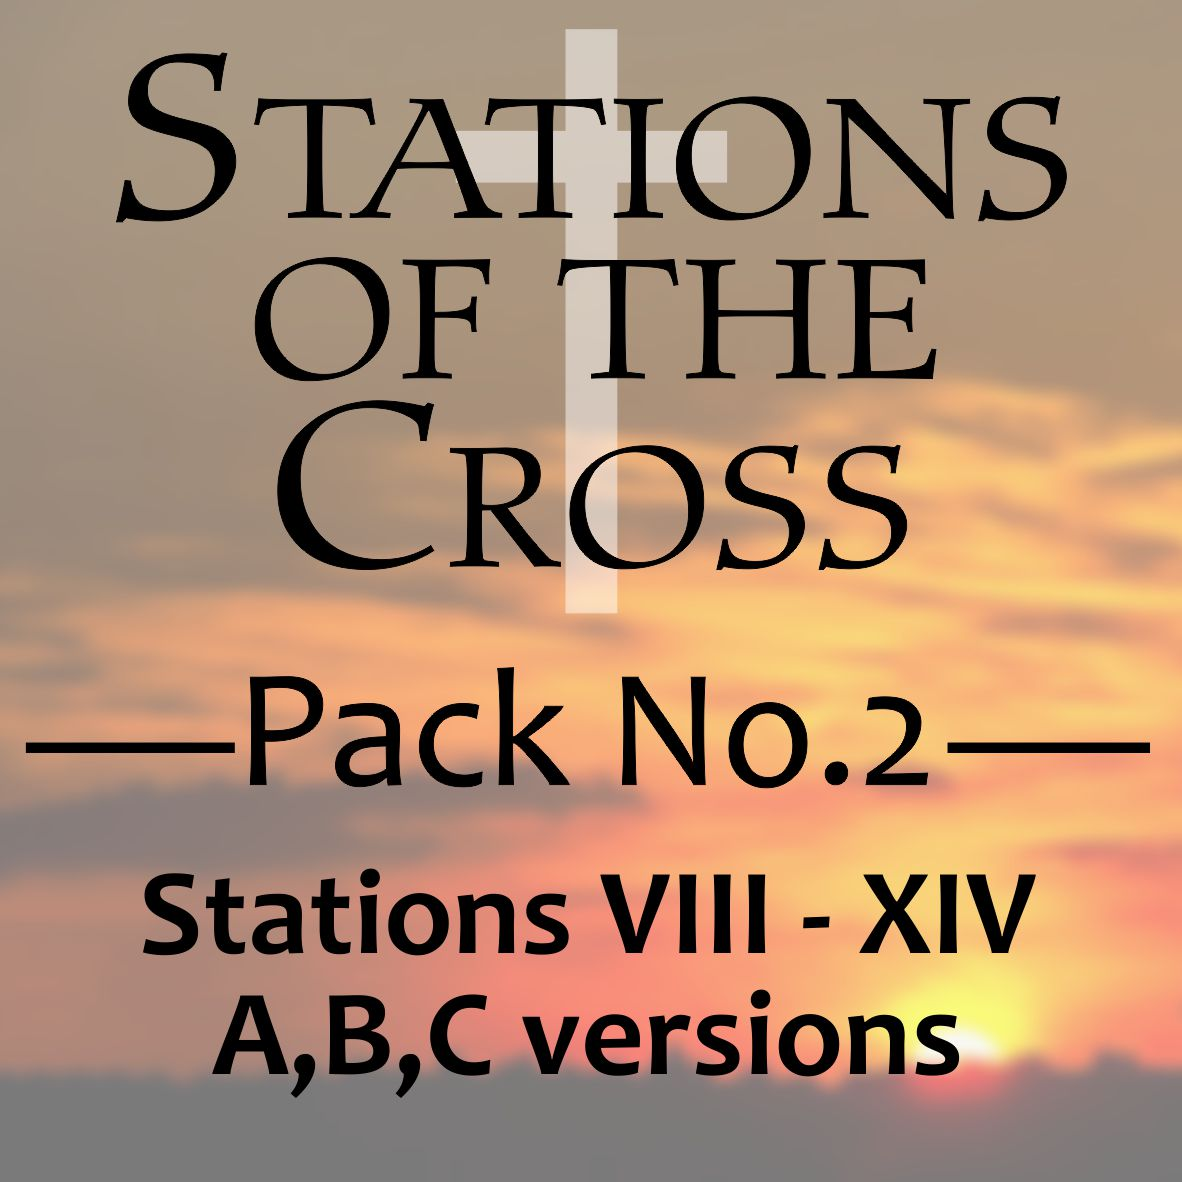 Stations of the Cross - VIII-XIV